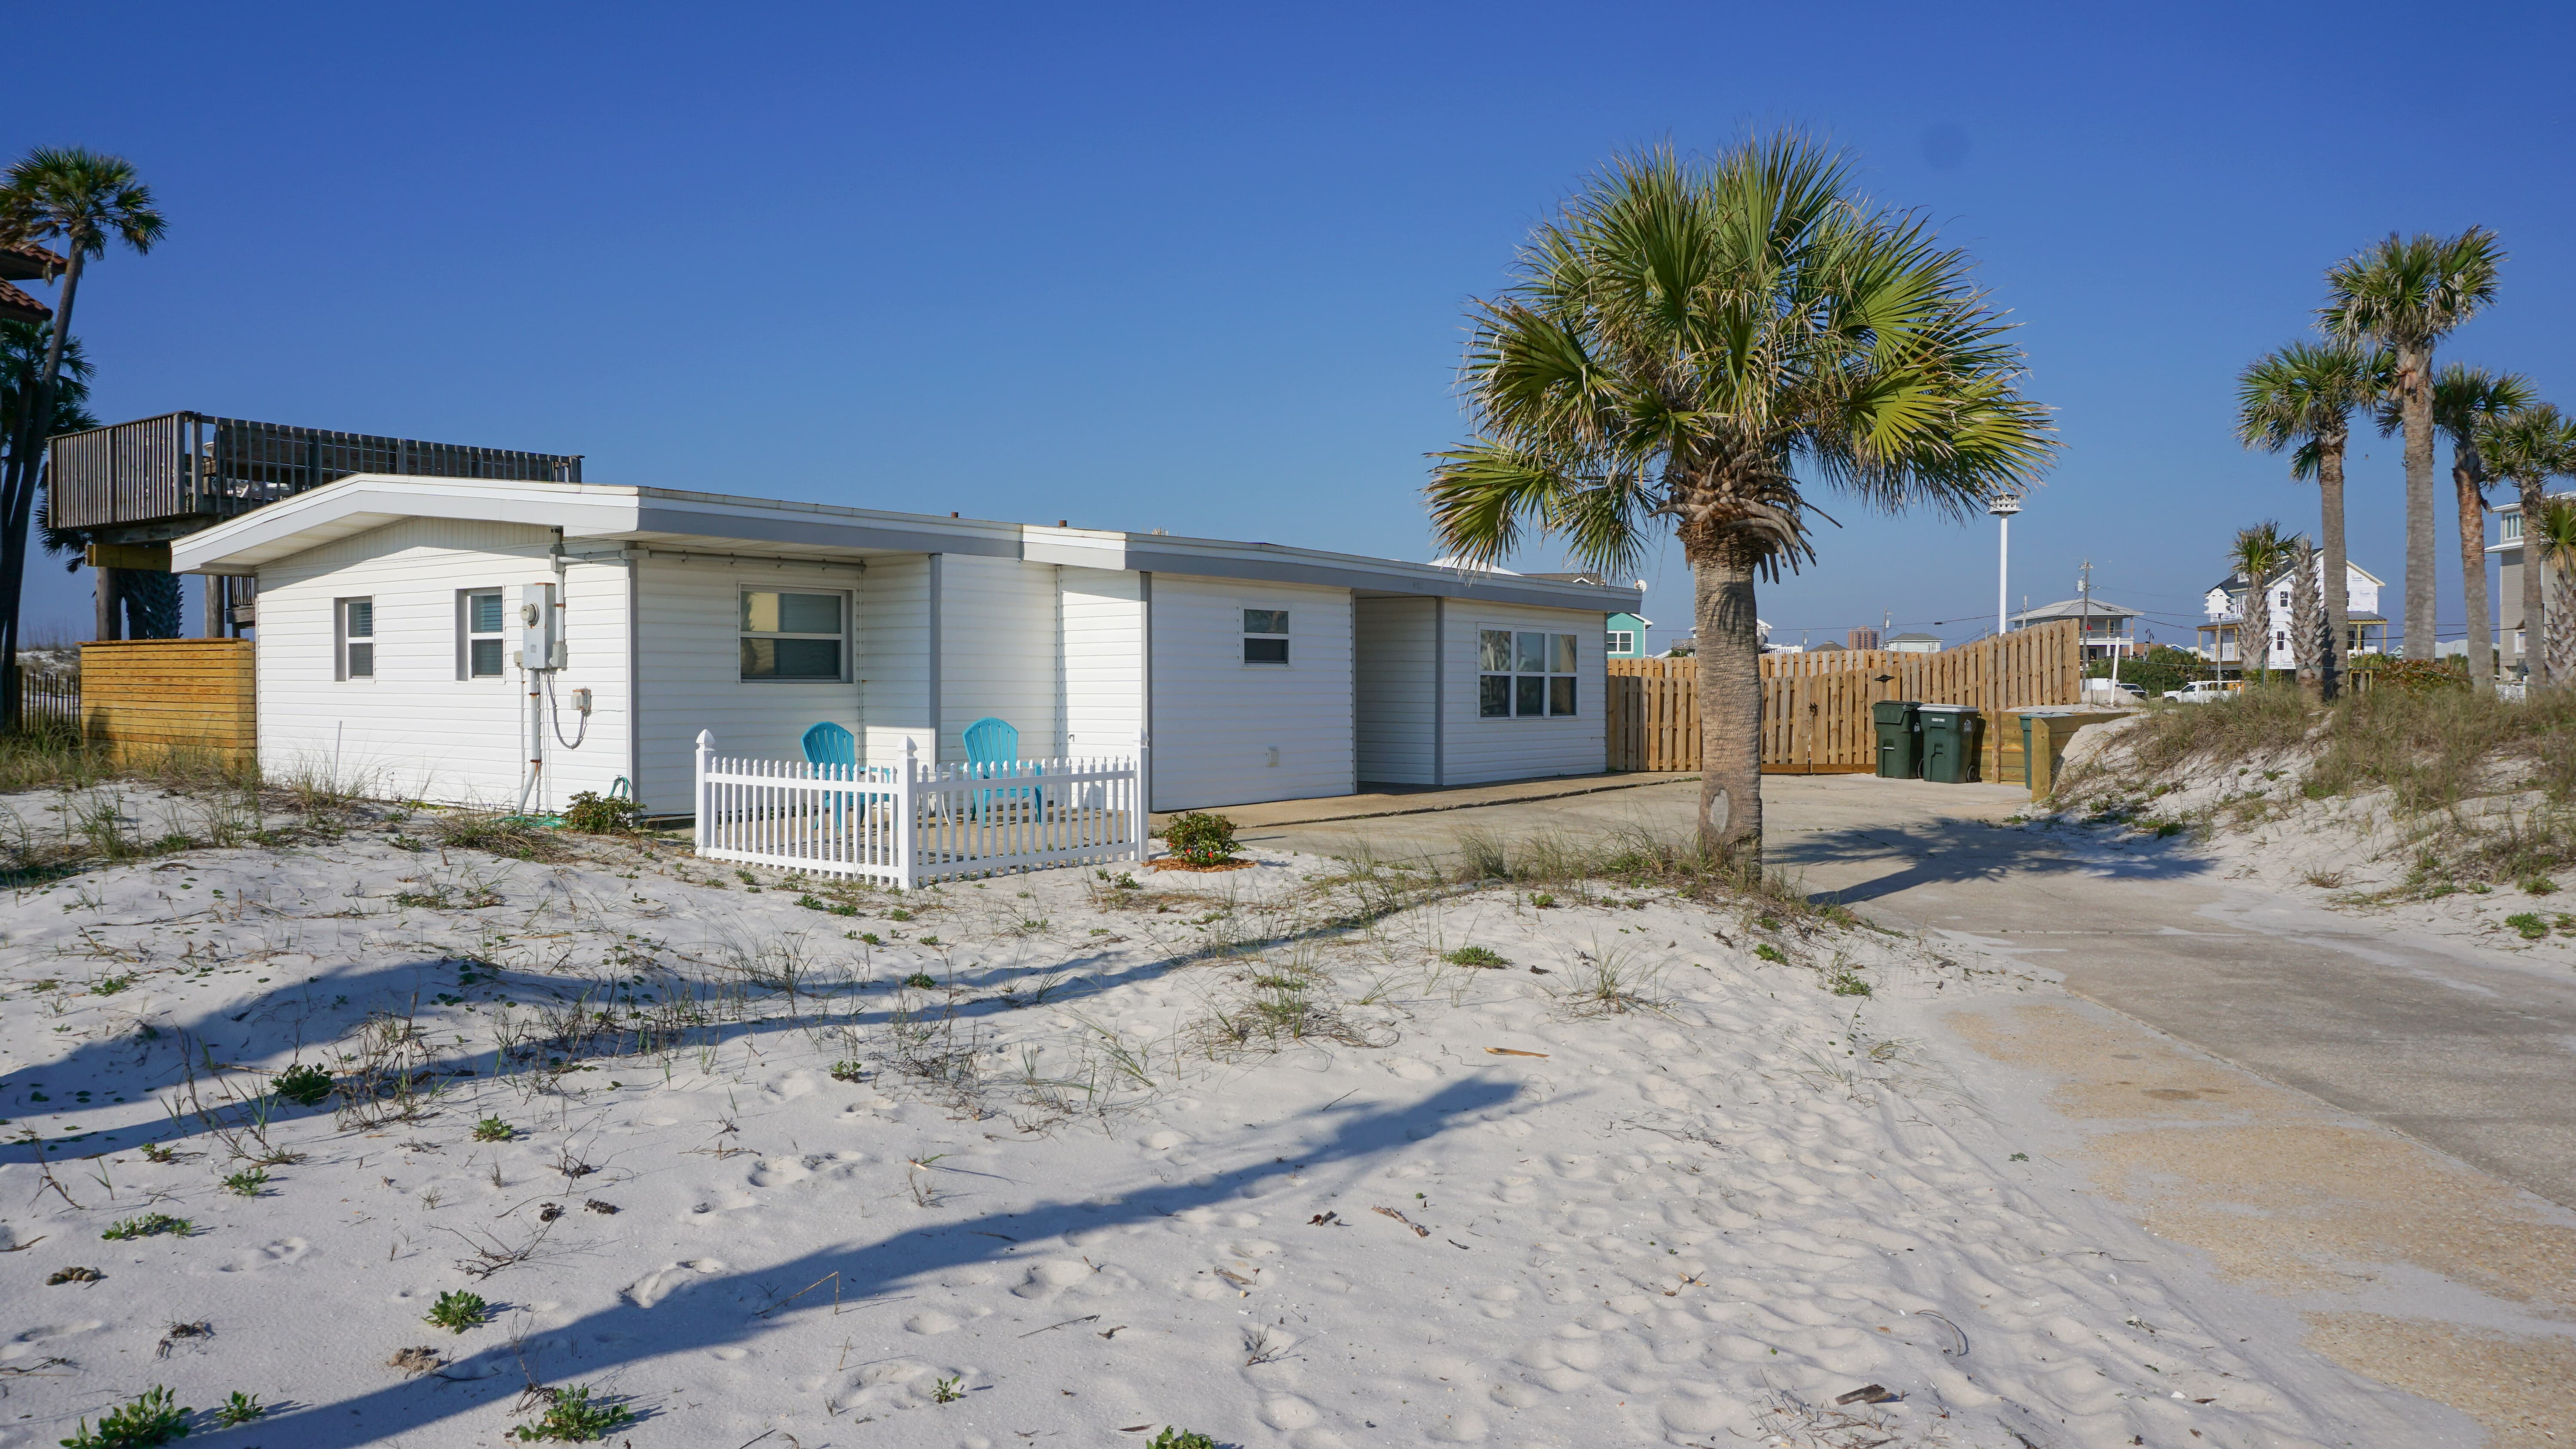 Avenida 14 - 402 House / Cottage rental in Pensacola Beach House Rentals in Pensacola Beach Florida - #4